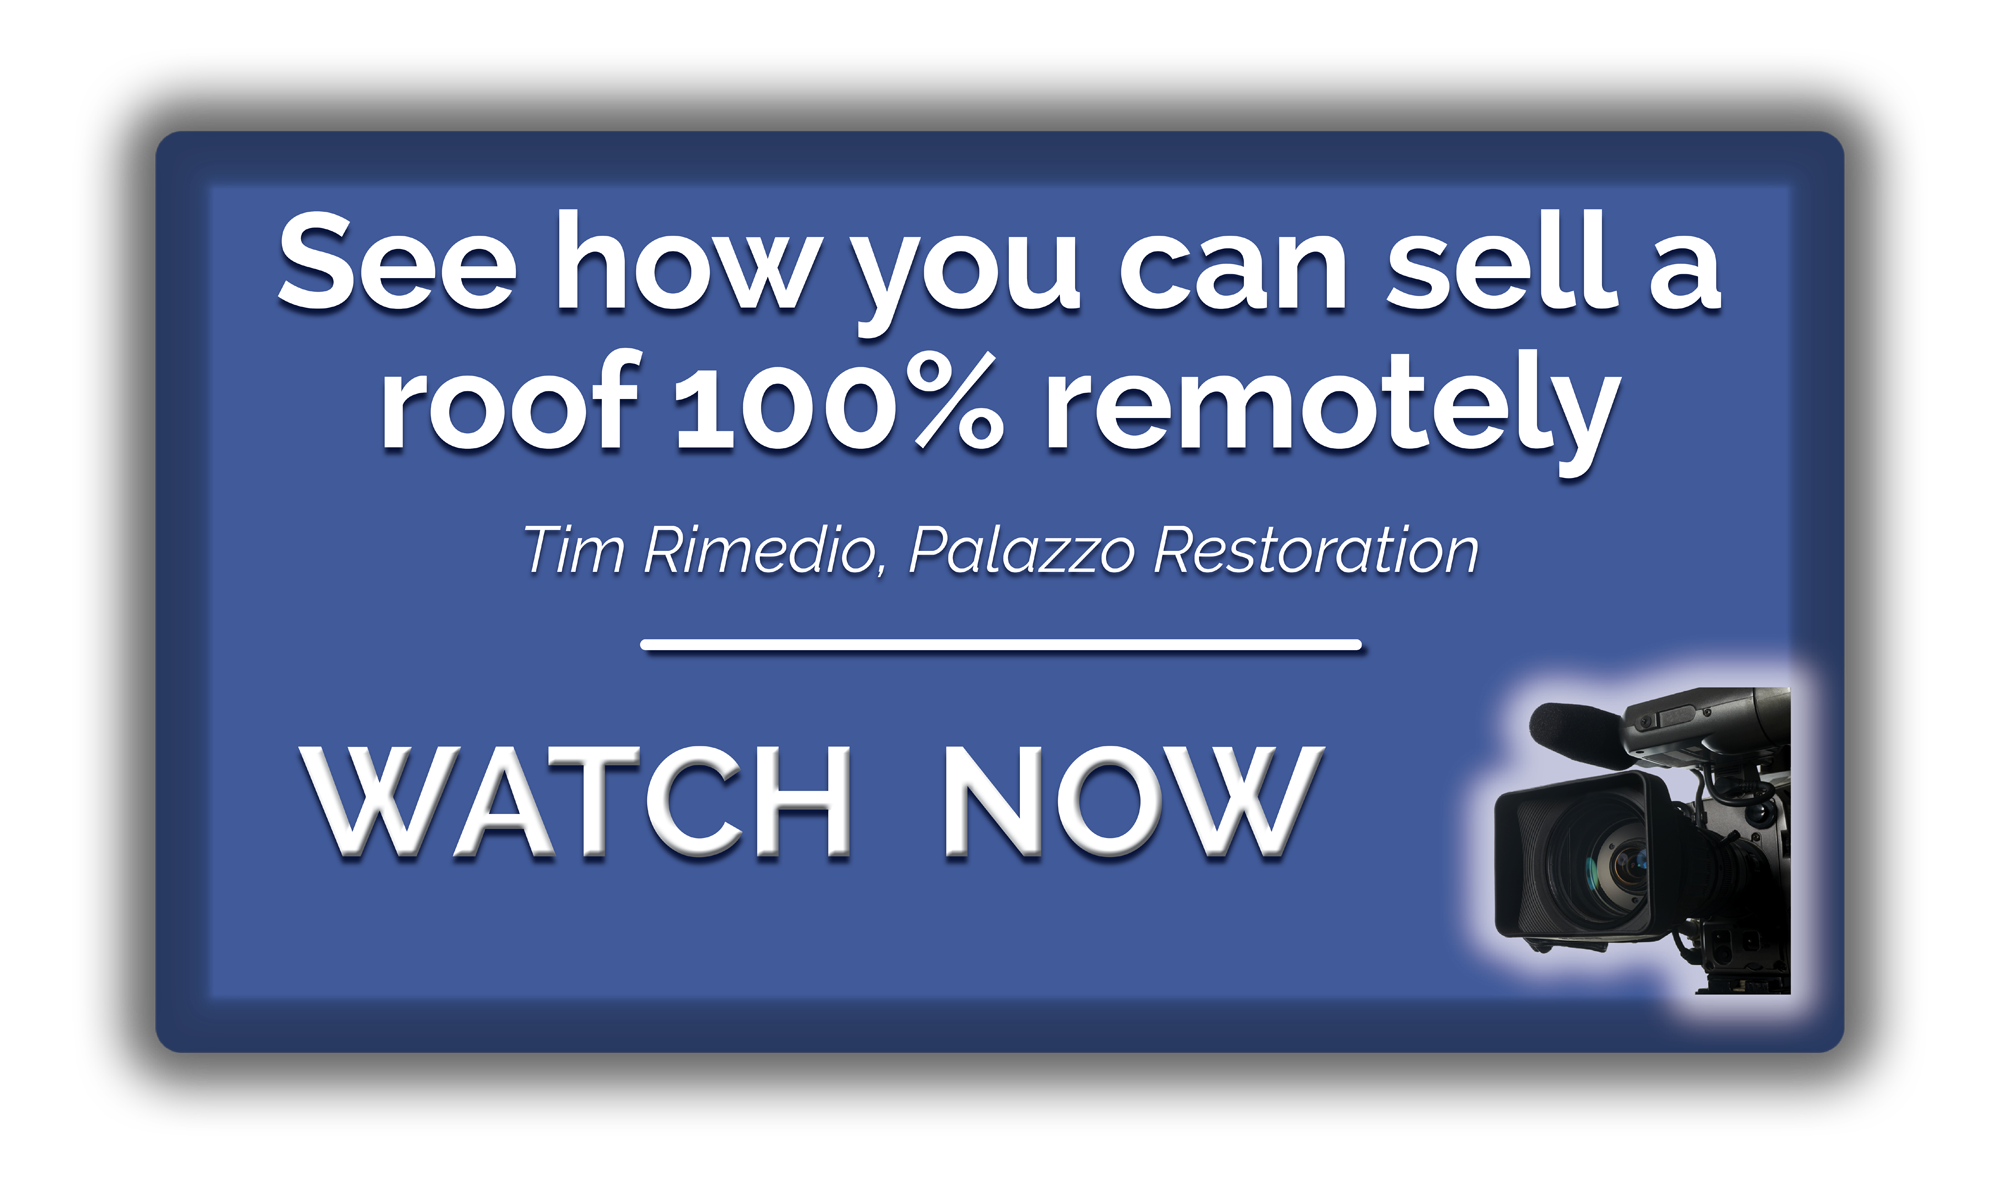 See-How-You-Rimedio-Button